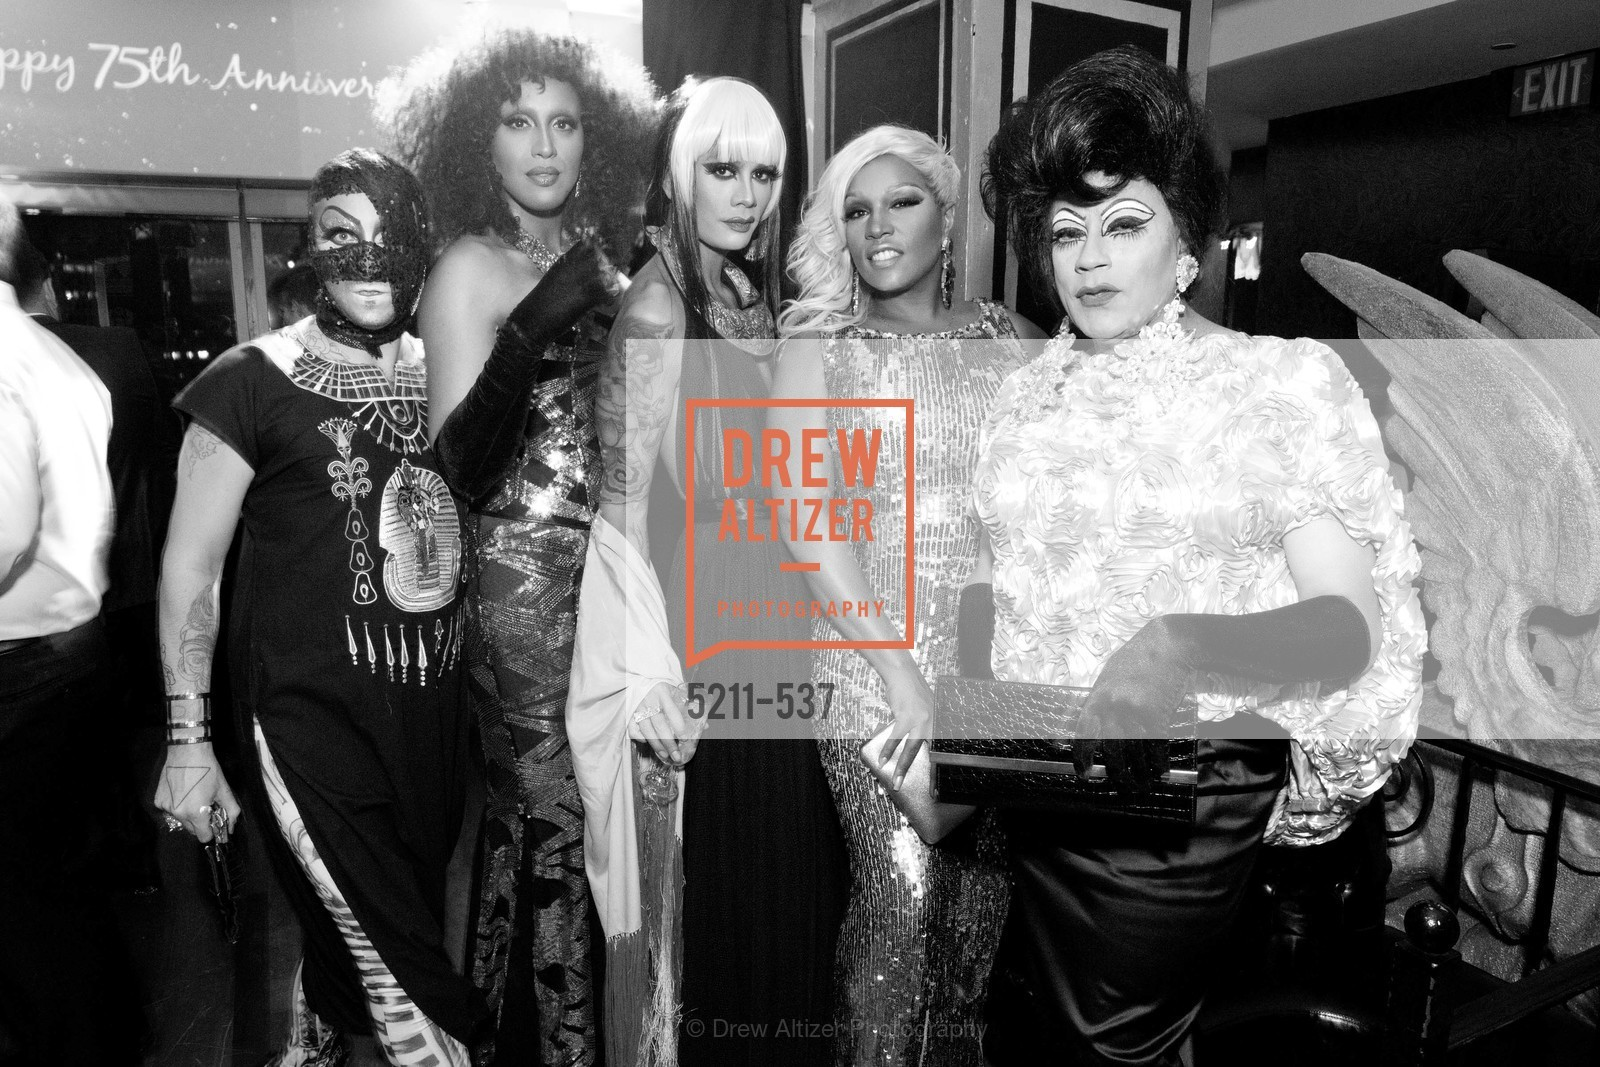 Raja, Simone Gemini, Juanita More, TOP OF THE MARK'S 75TH Anniversary Party, US, November 6th, 2014,Drew Altizer, Drew Altizer Photography, full-service agency, private events, San Francisco photographer, photographer california